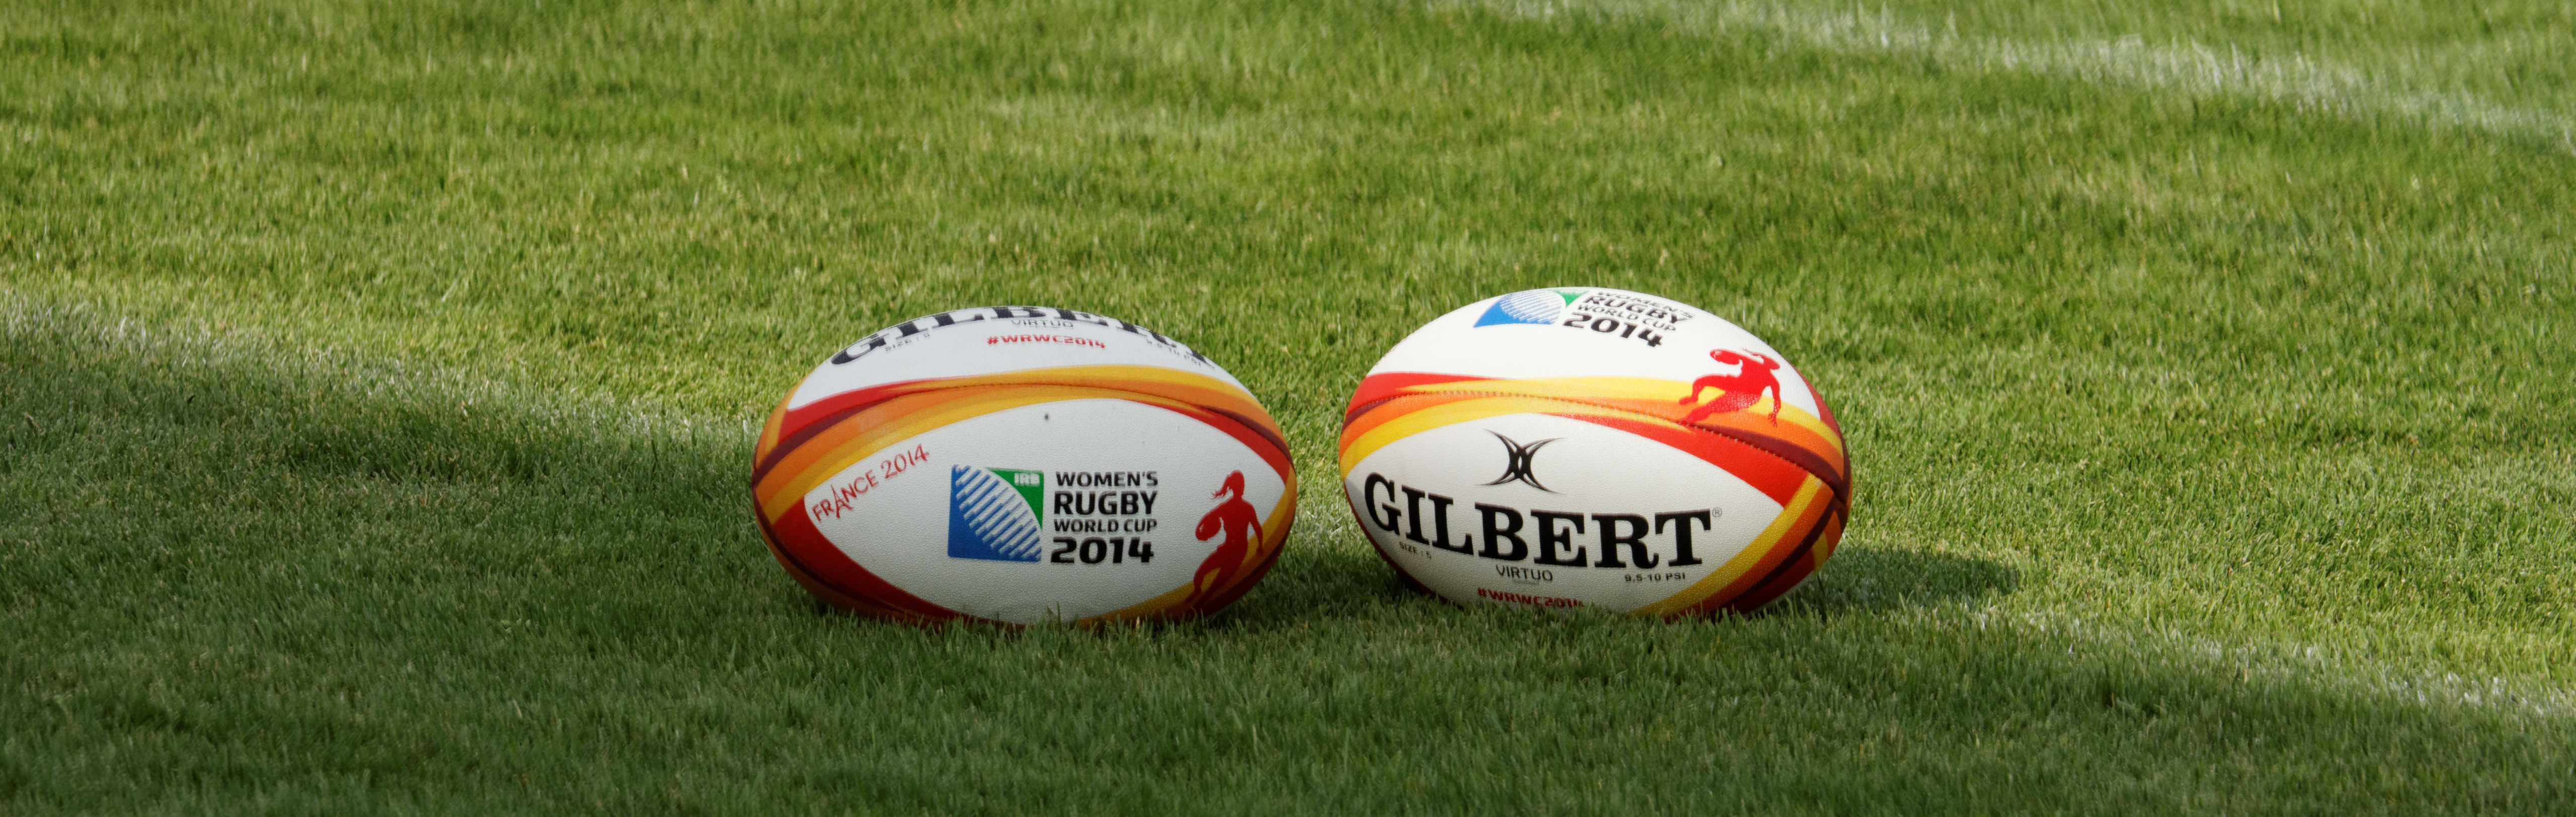 2014_Women's_Rugby_World_Cup_136